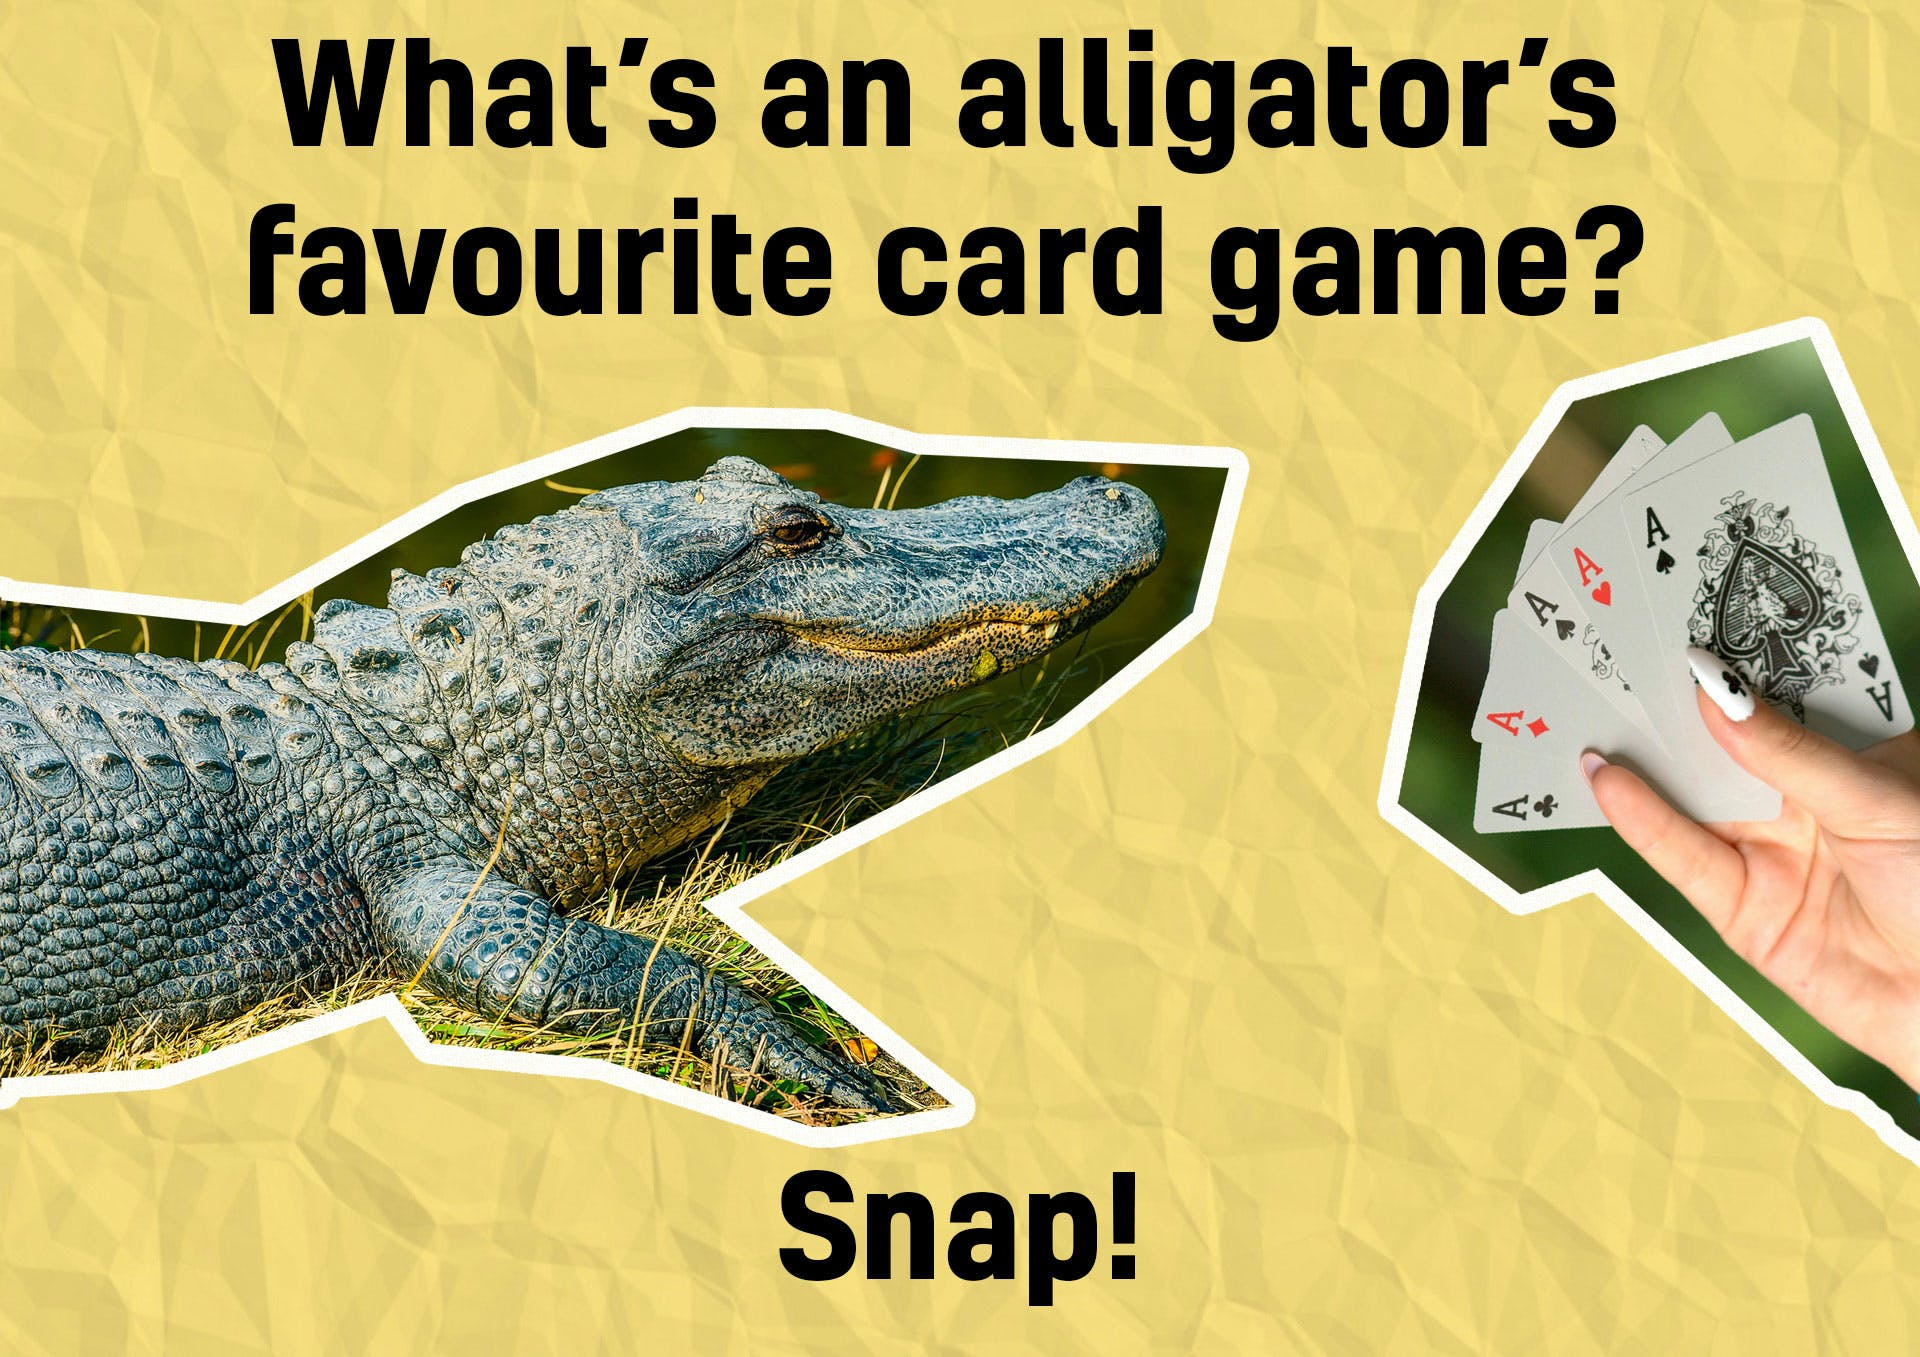 Alligator joke